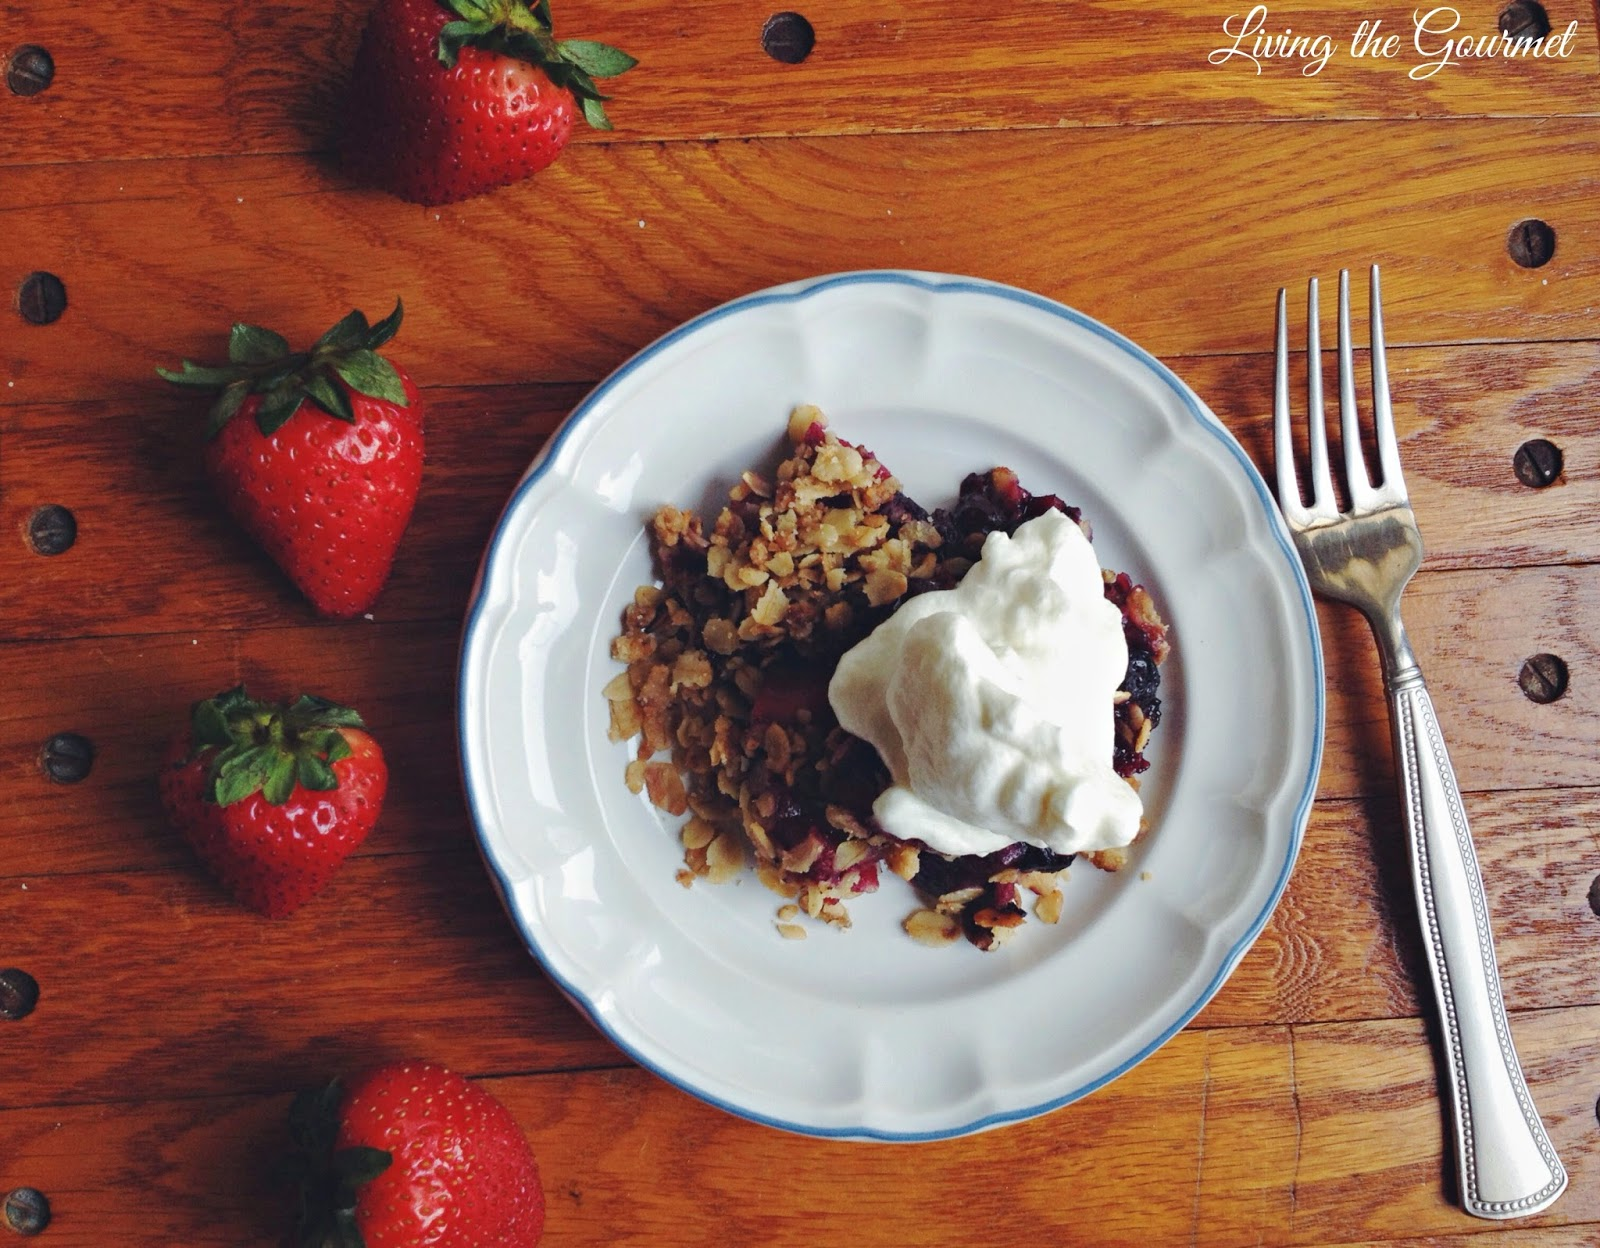 healthy fruit crumble topping strange fruit lyrics